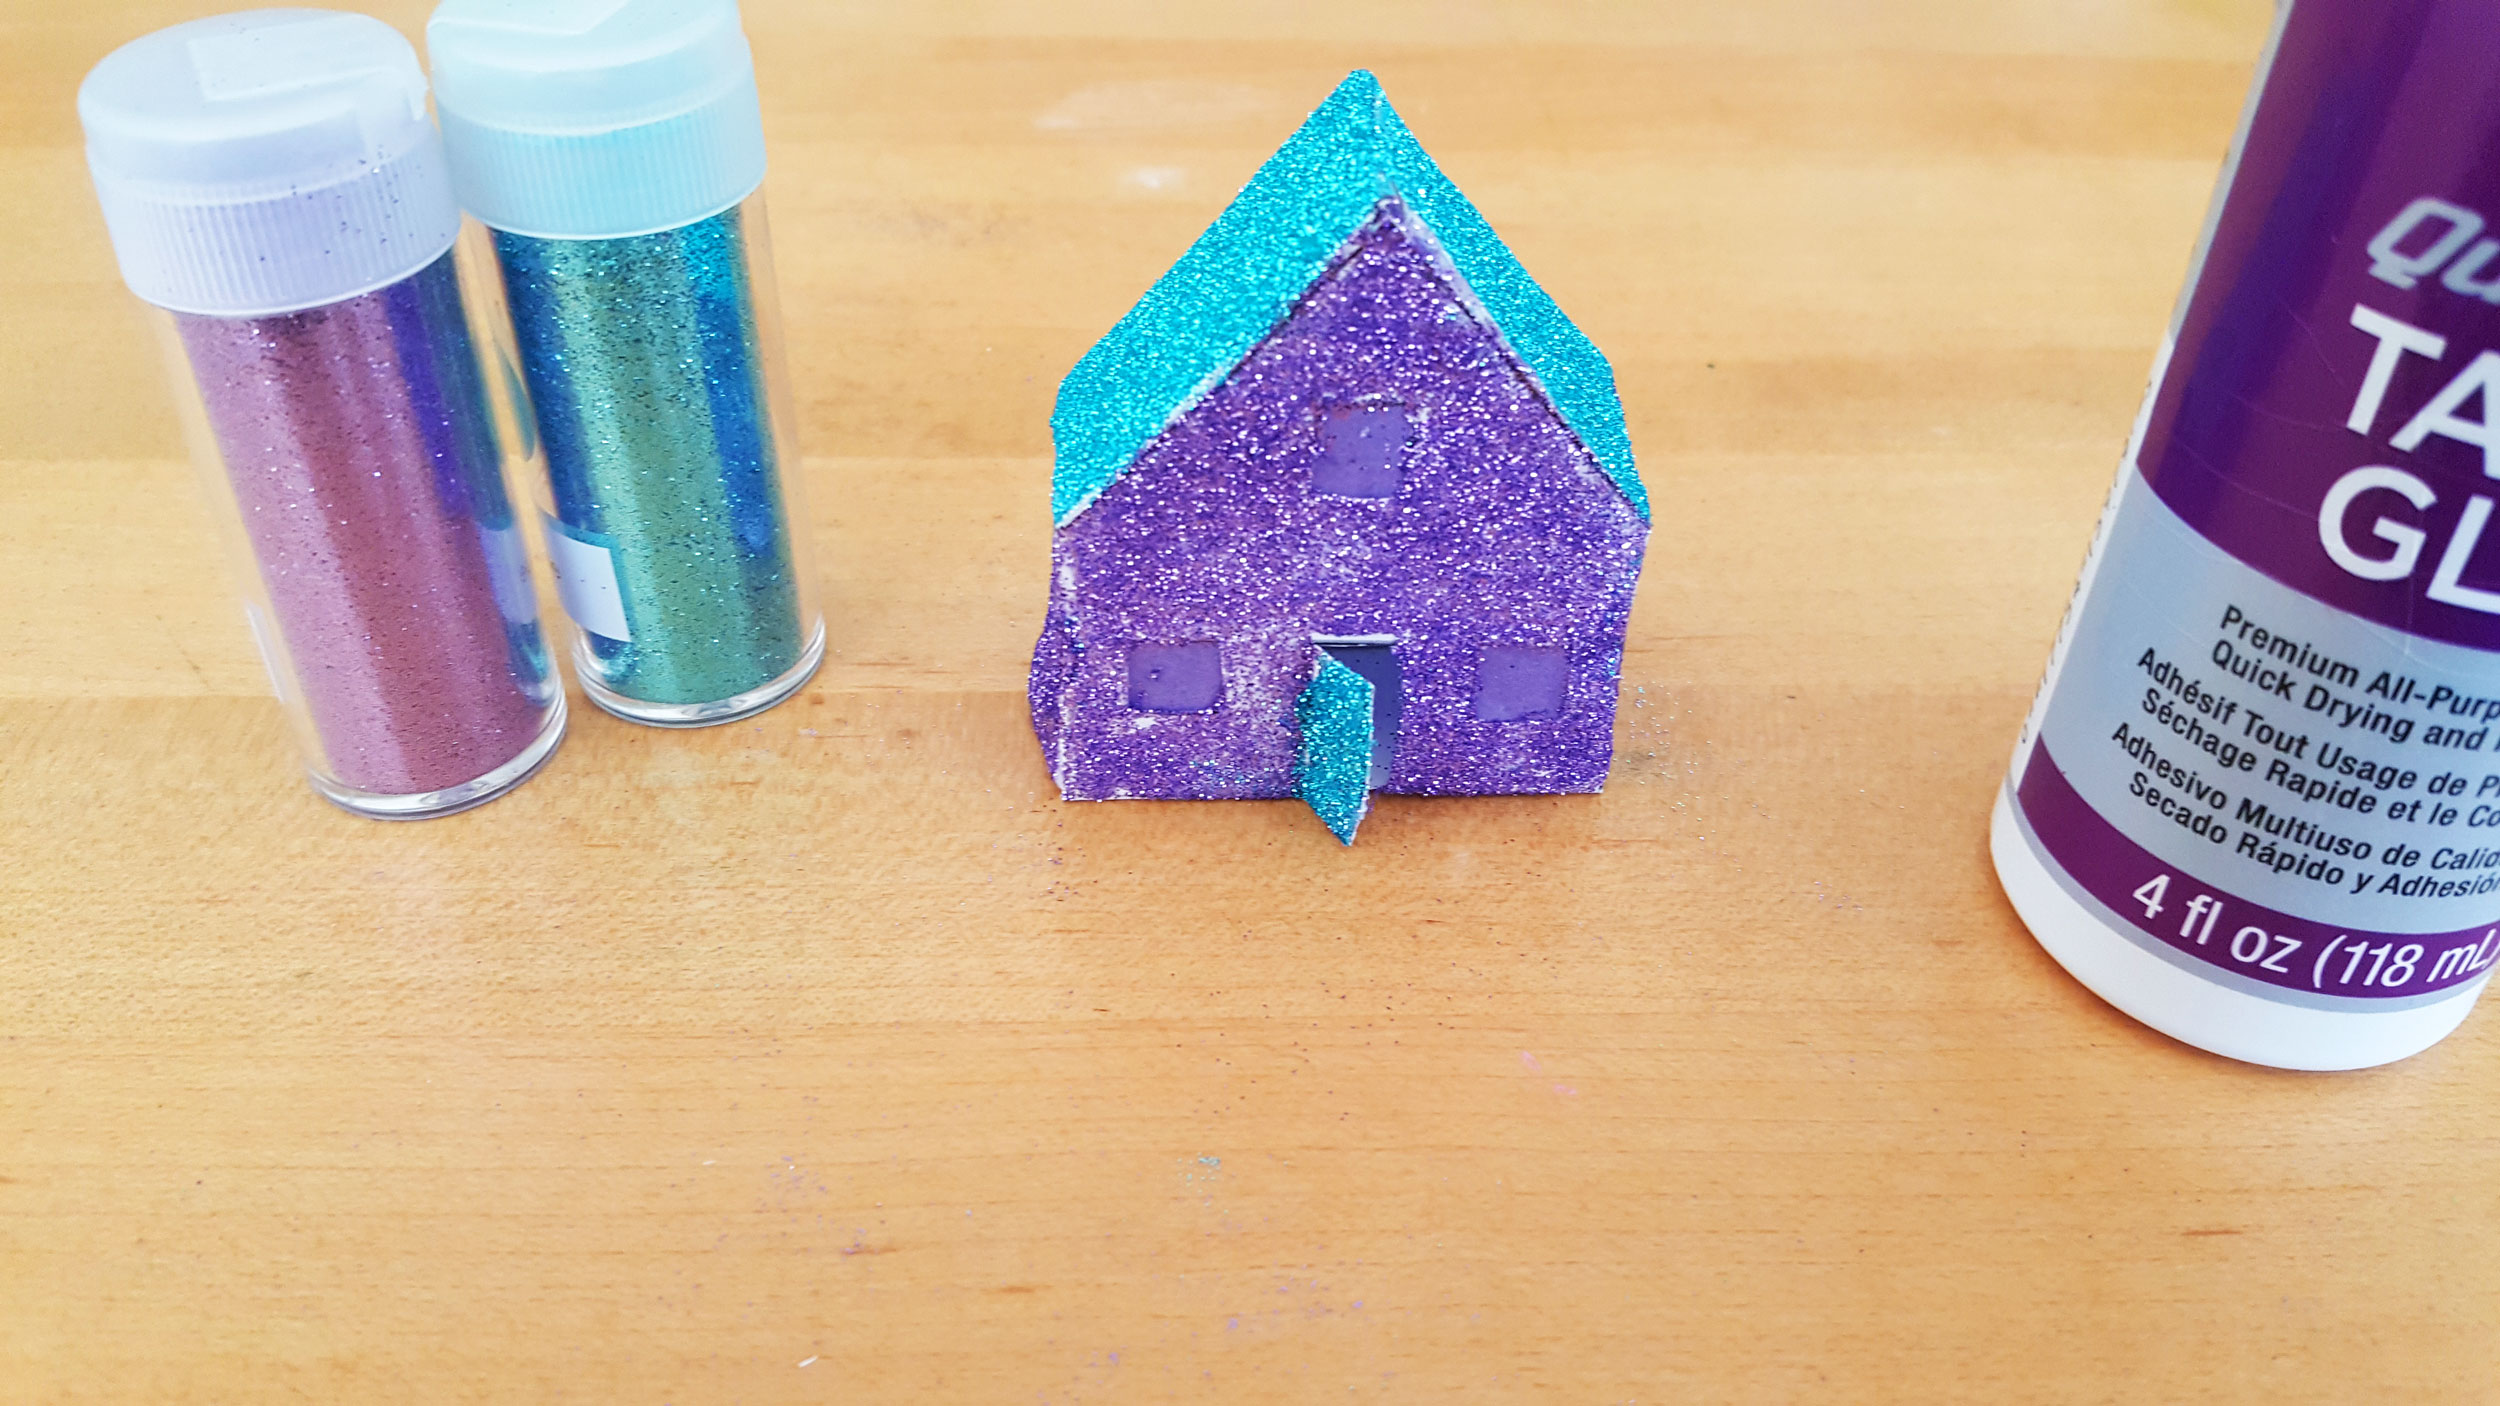 Add glue and glitters to outside of Paper House Ornament | OrnamentShop.com